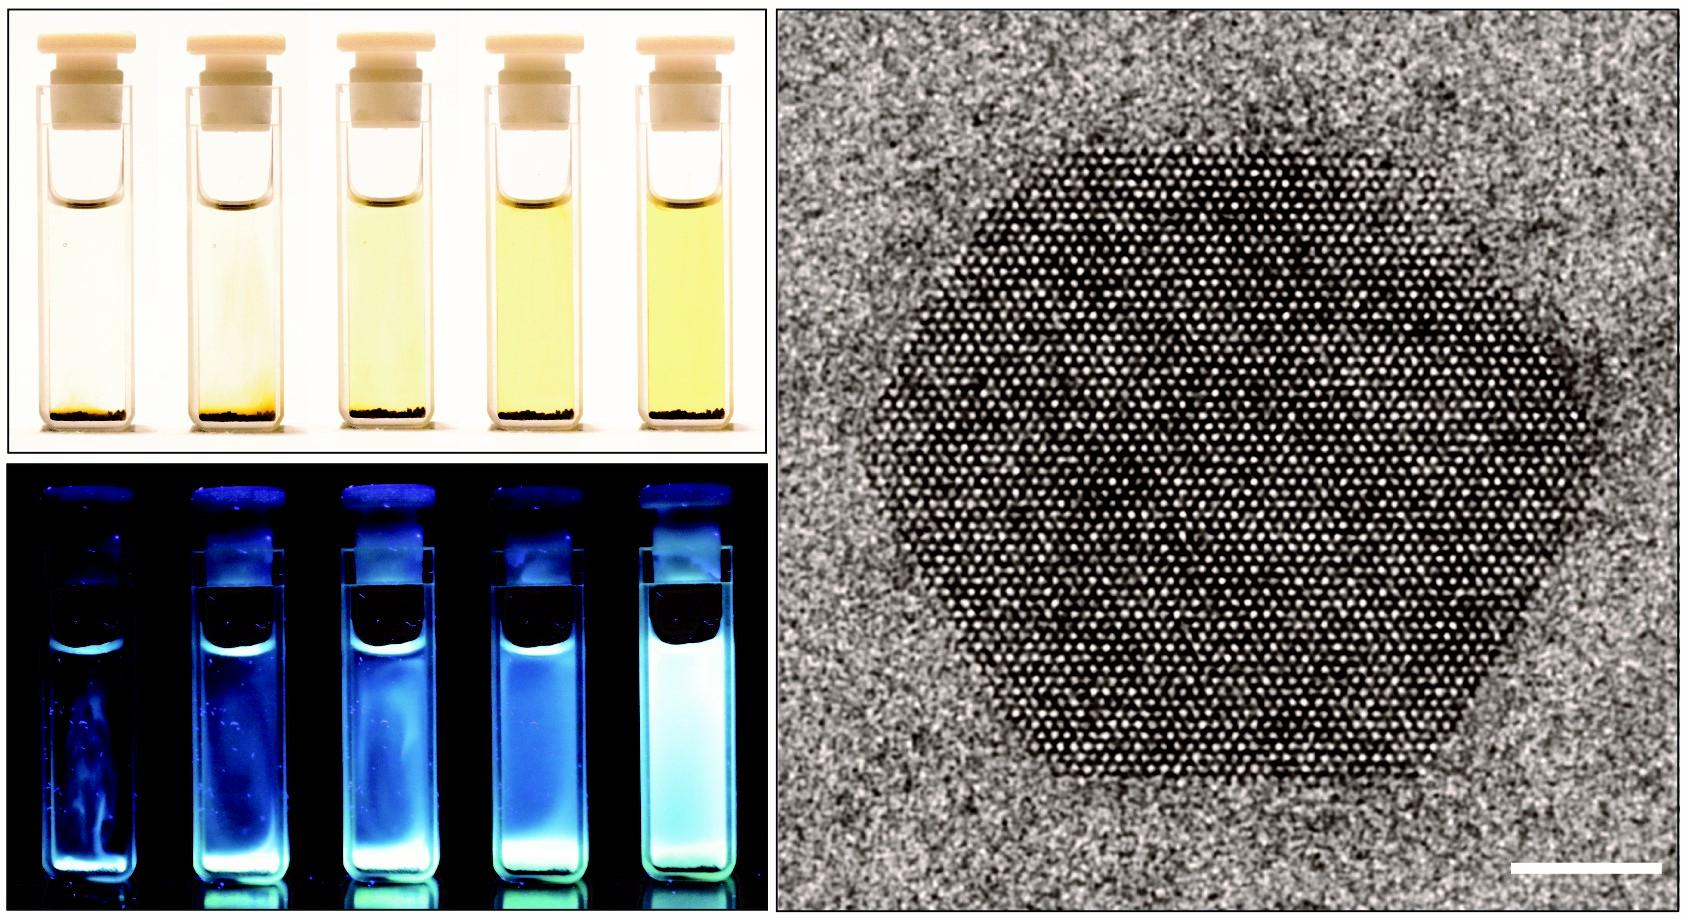 Hexagonal carbon nitride nanosheets gently dissolve into solution over time (left), producing luminescent, defect free 2d-nanosheets (right).